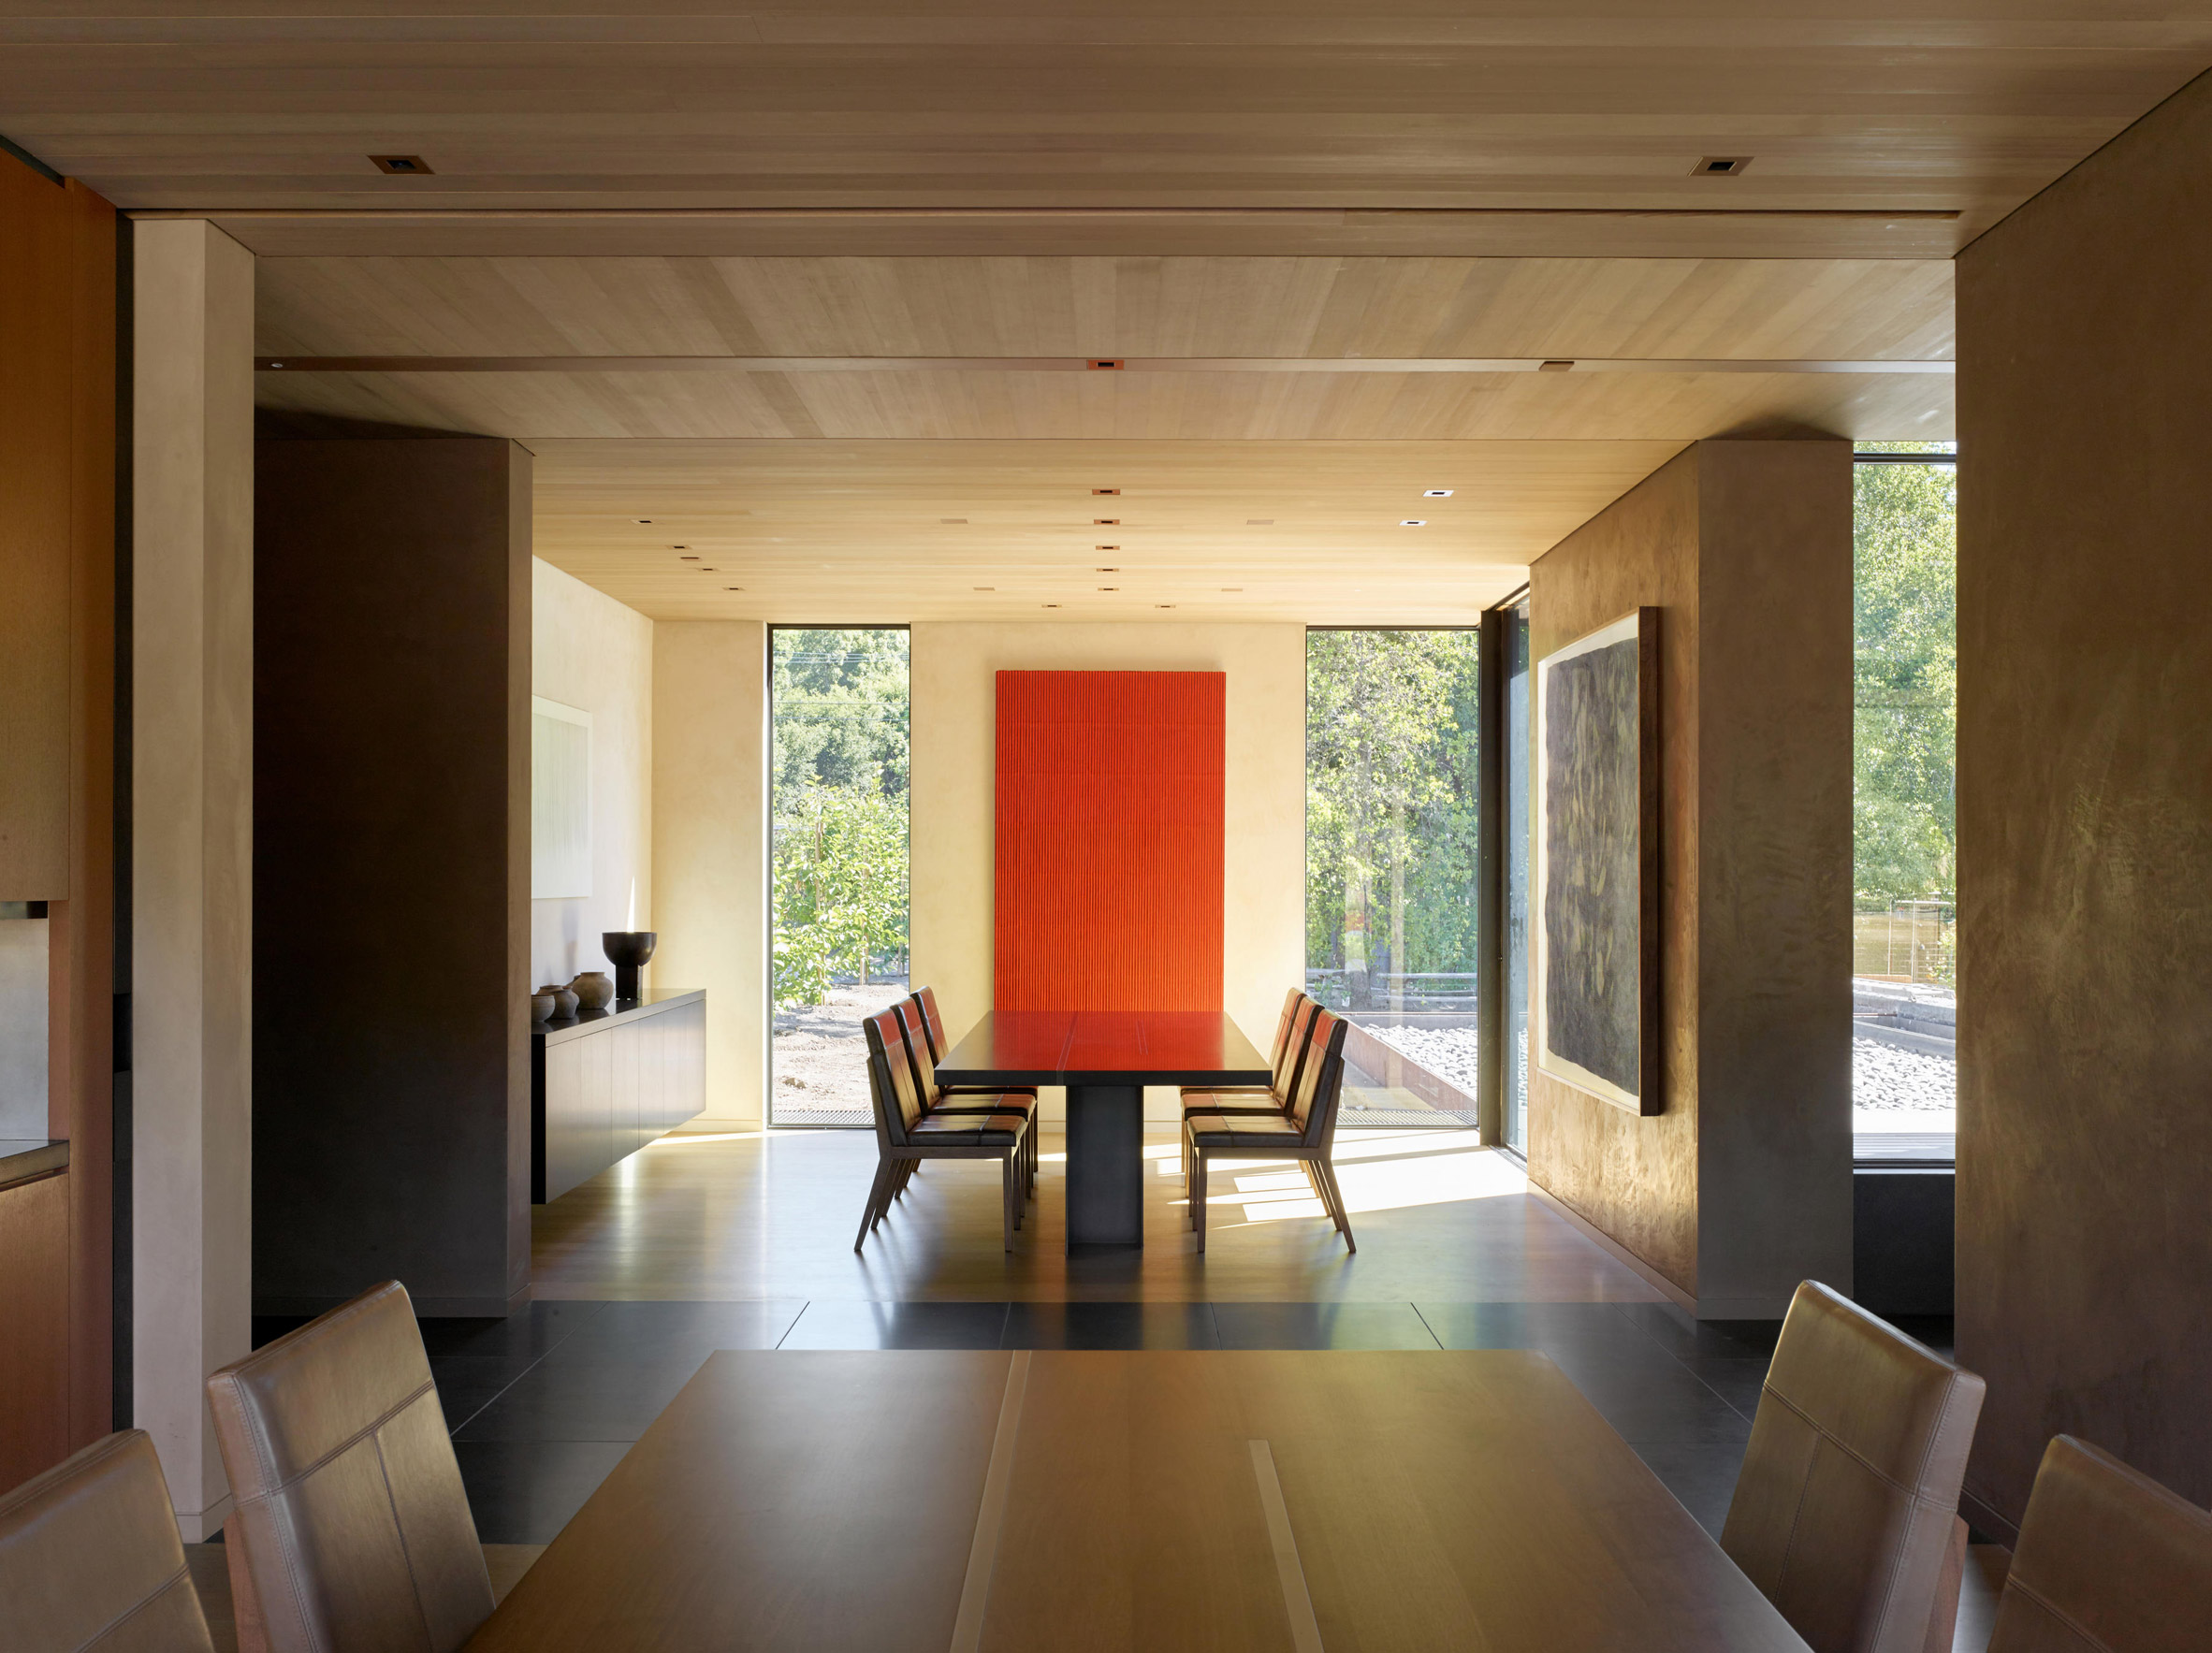 At the core of the house is the public zone, including the main living and dining area